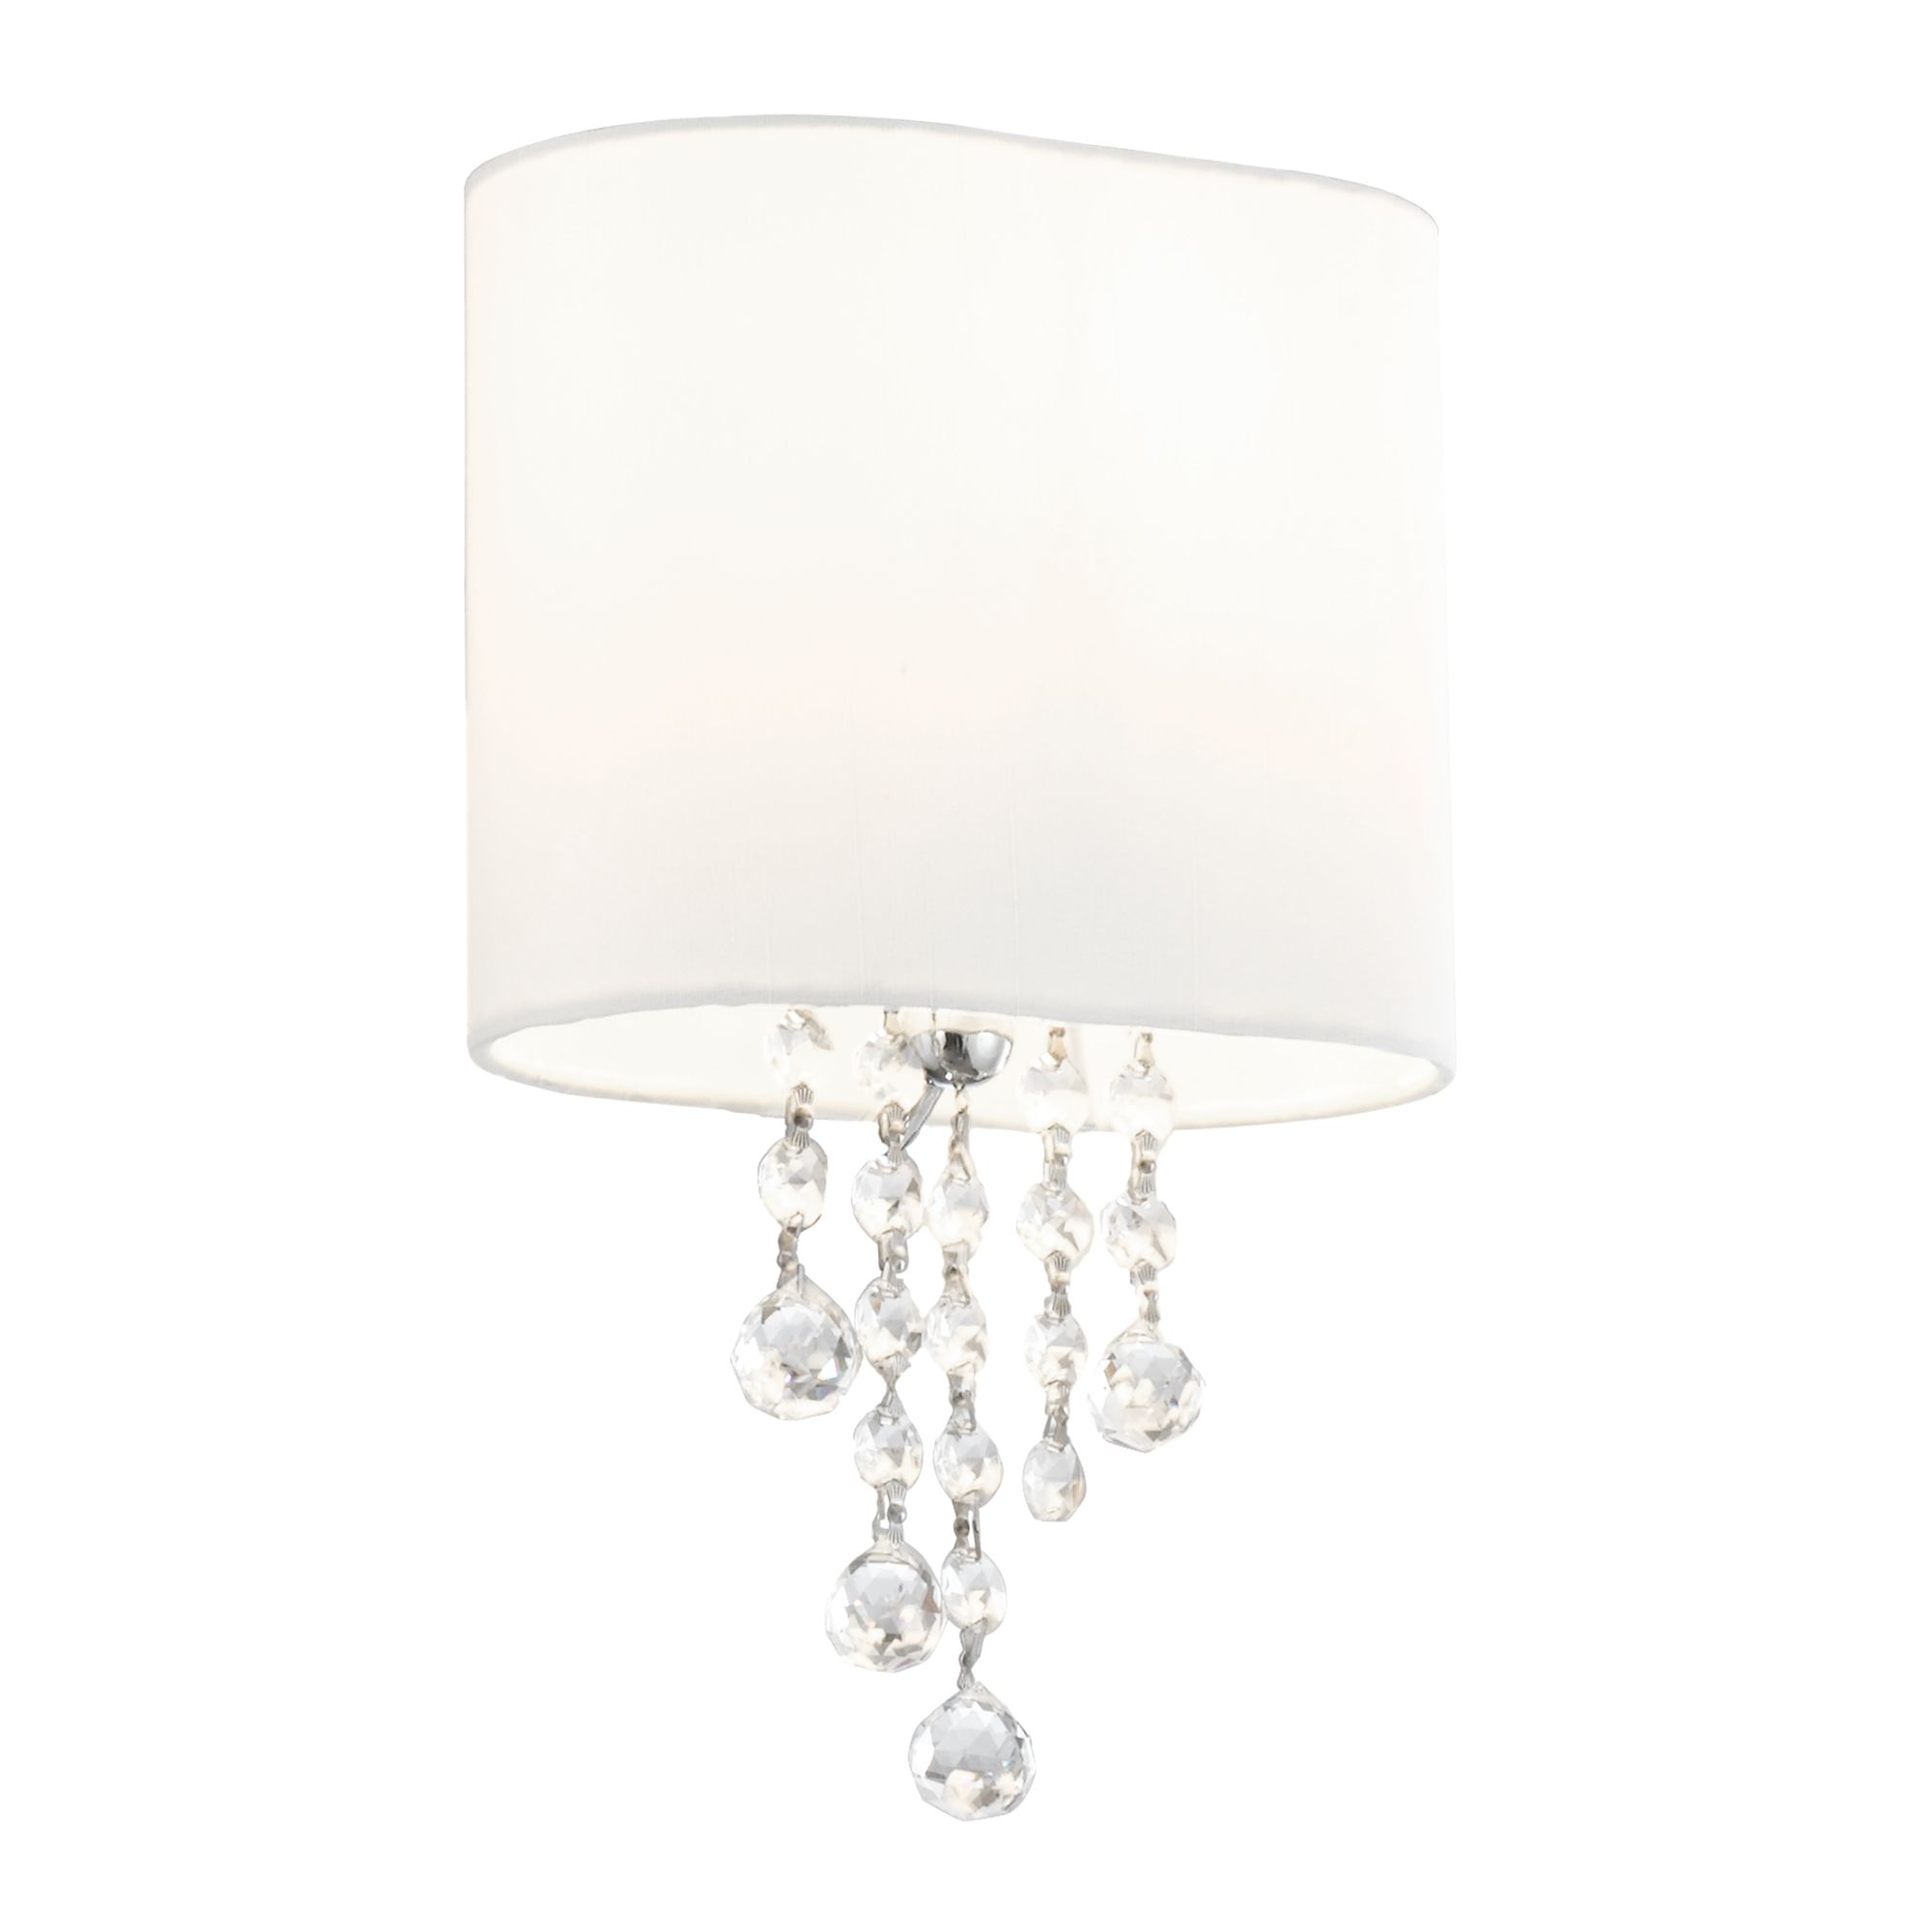 Nina Chrome Wall Light With Crystal Beads & White Fabric Shade